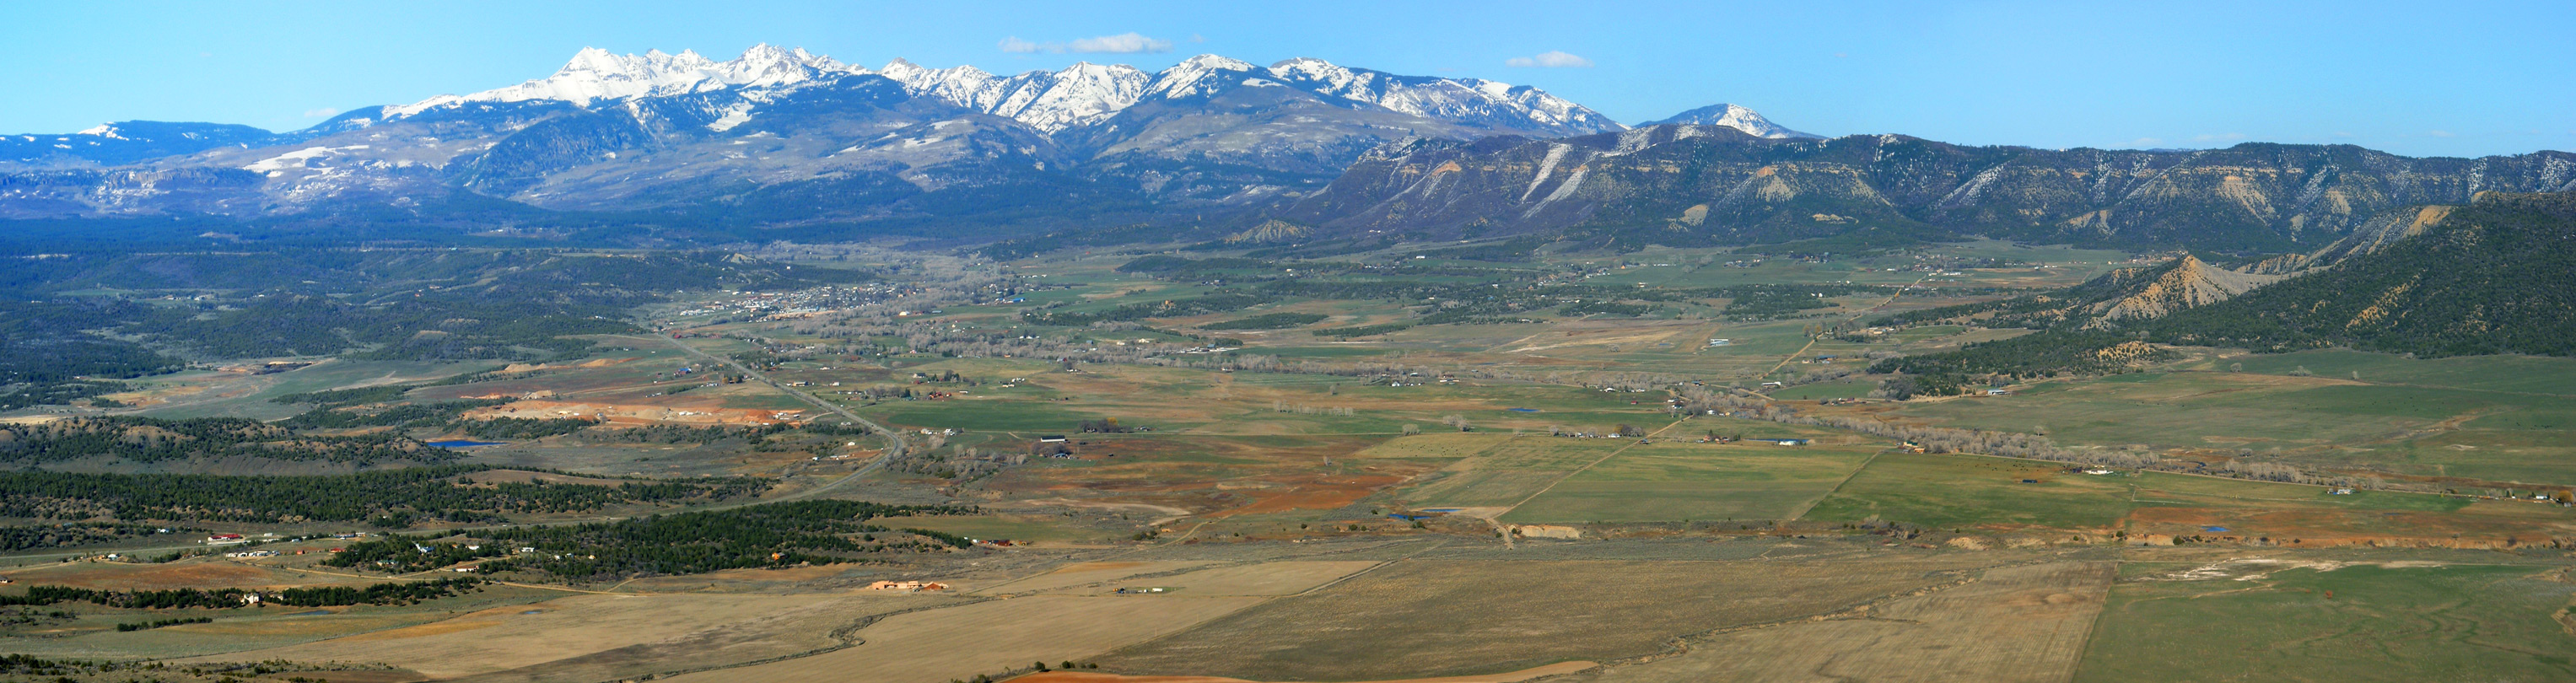 Mancos Valley Overlook